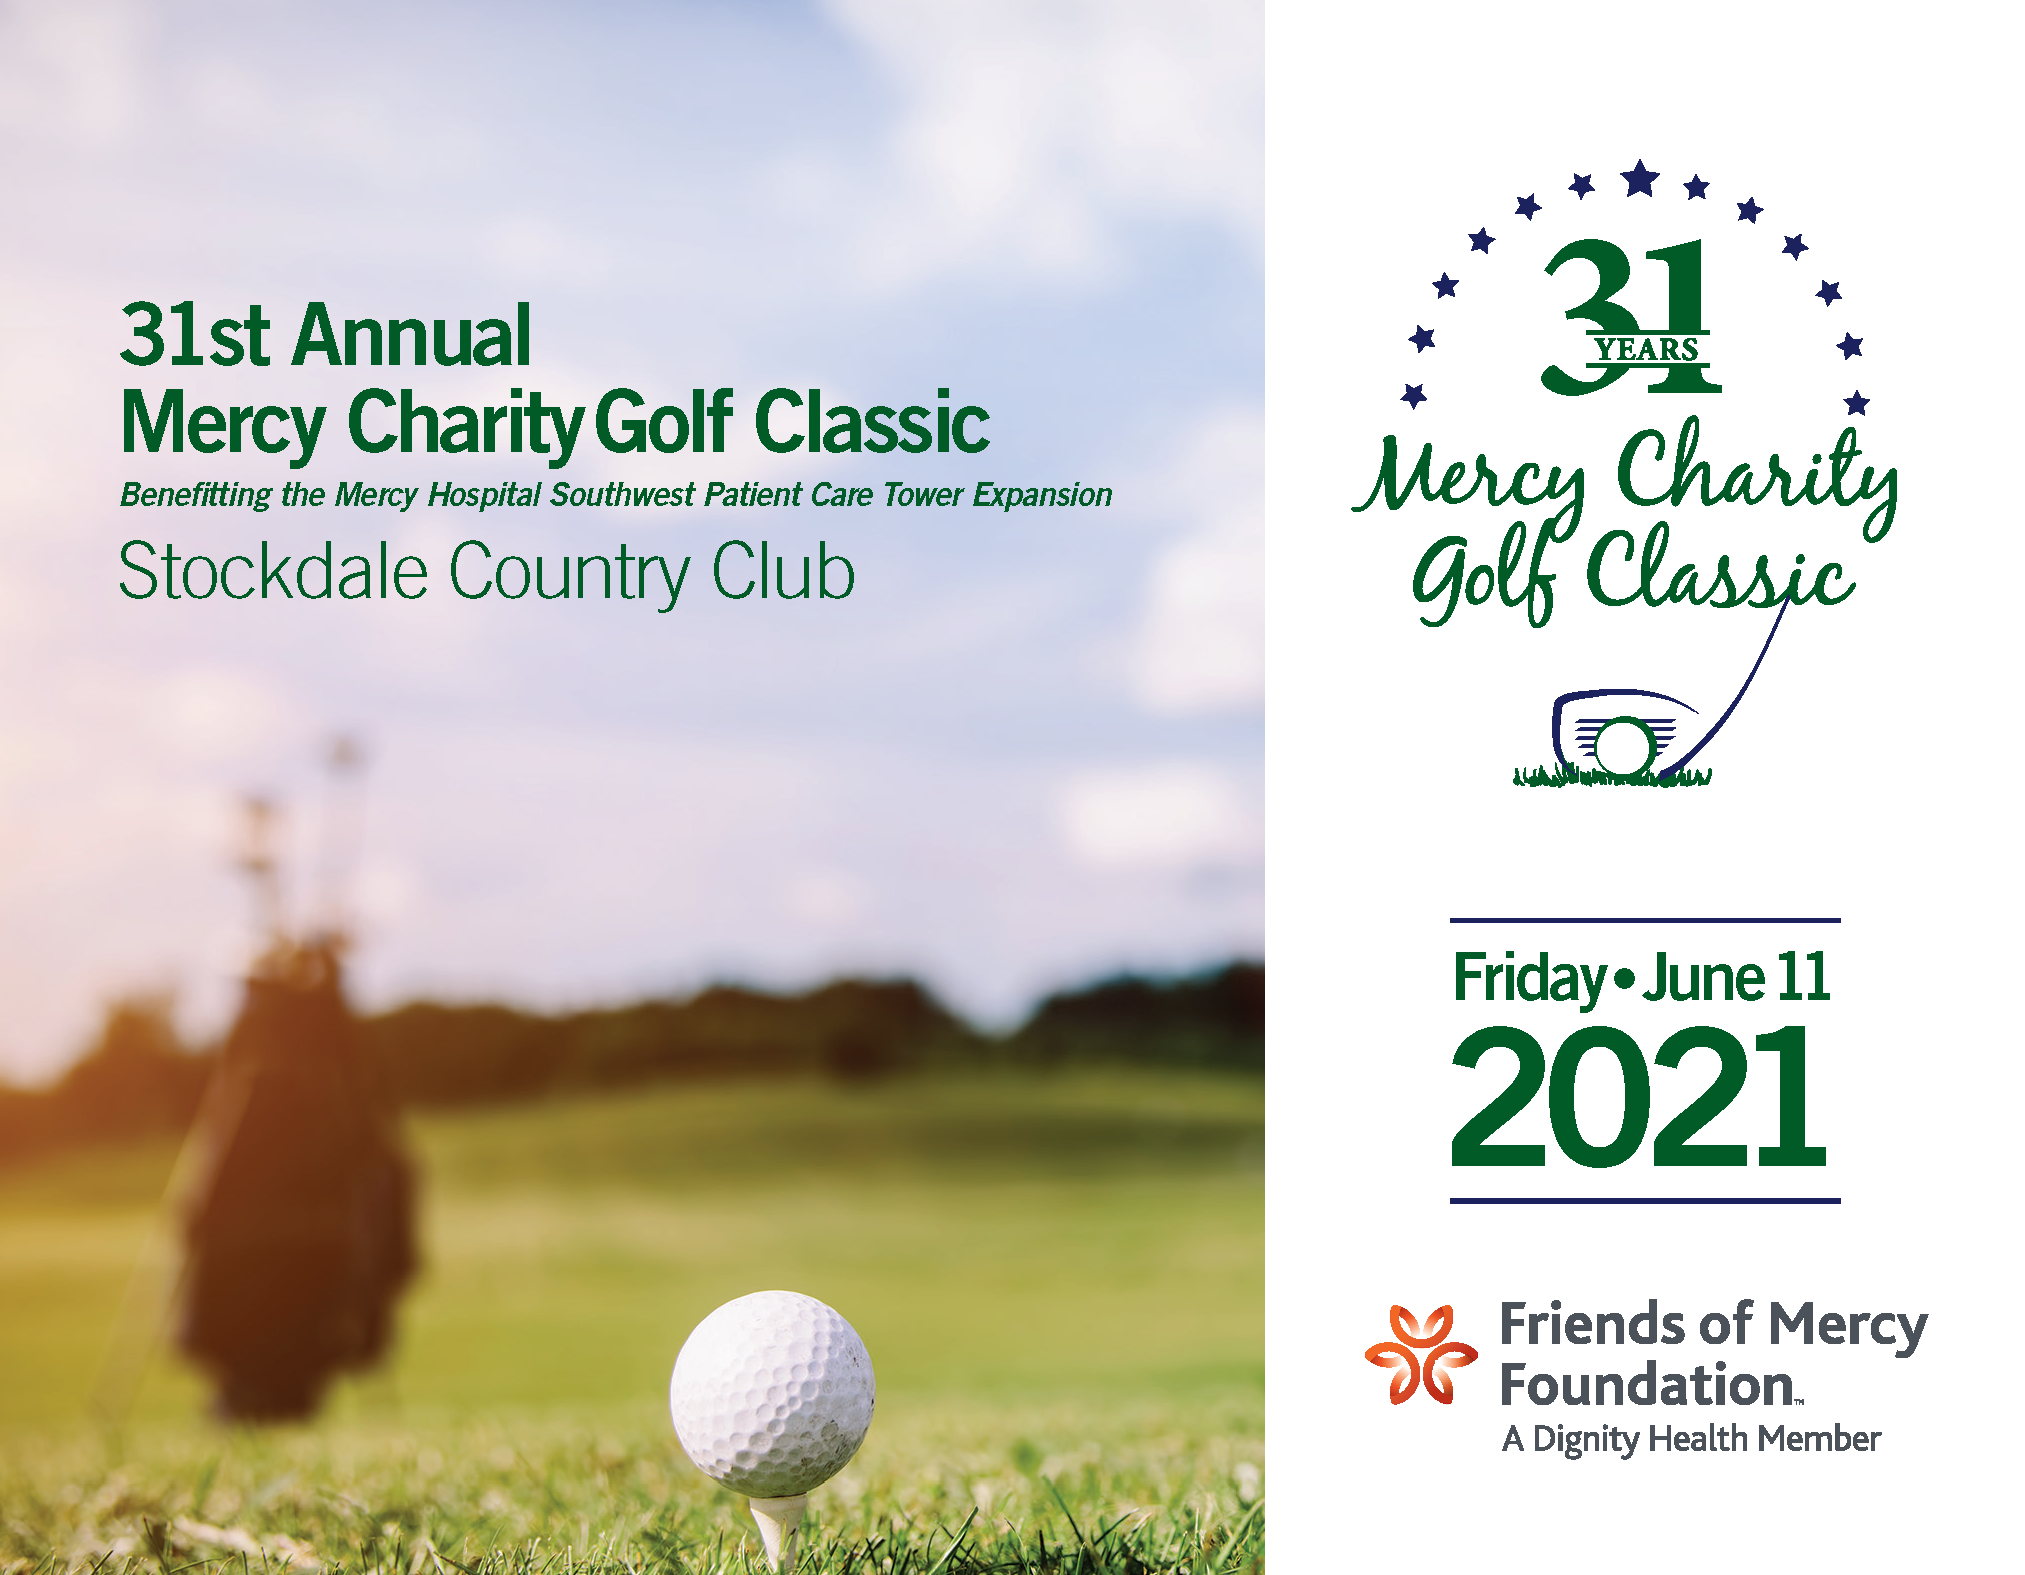 31st Annual golf classic image with details